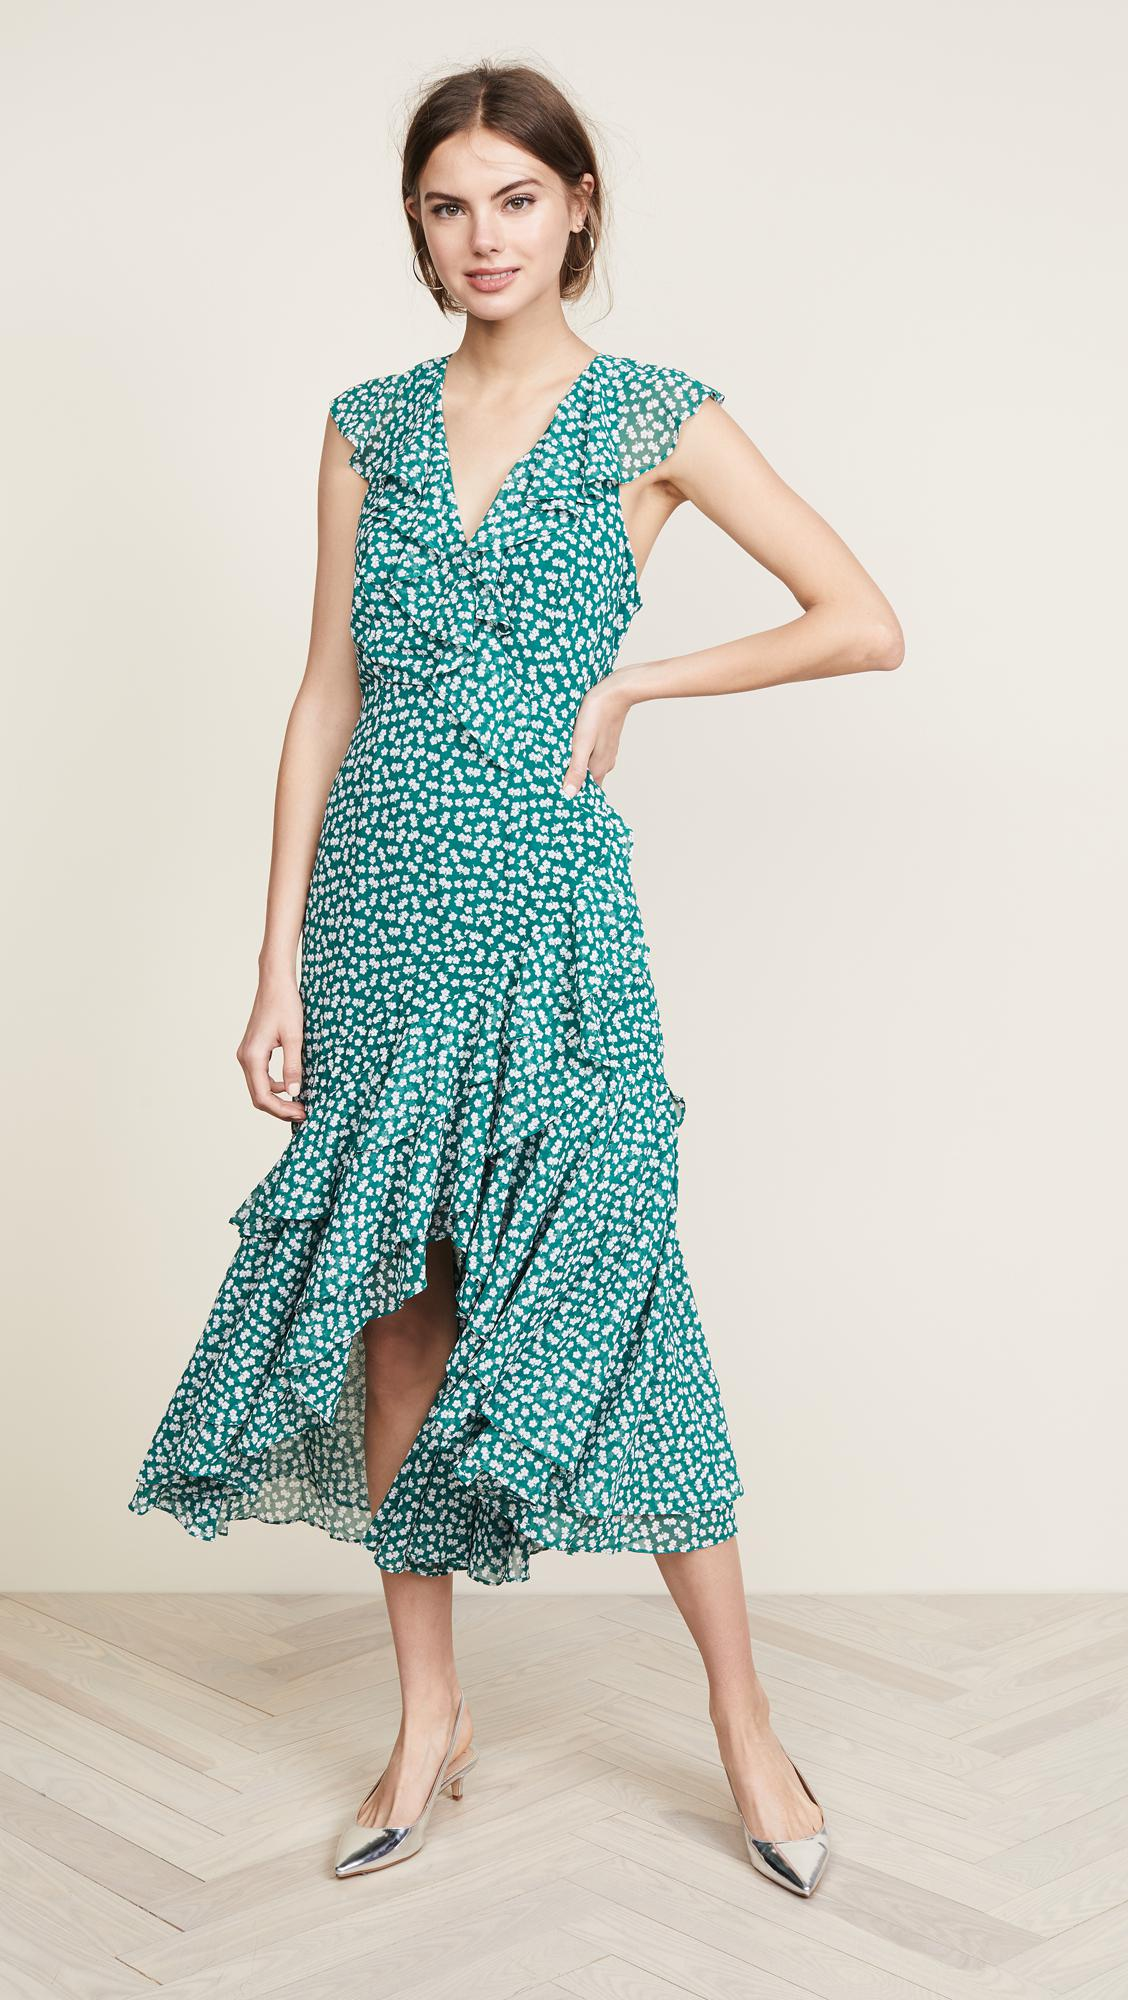 a7c6ae8125ba C/meo Collective Be About You Ruffle Midi Dress in Green - Lyst